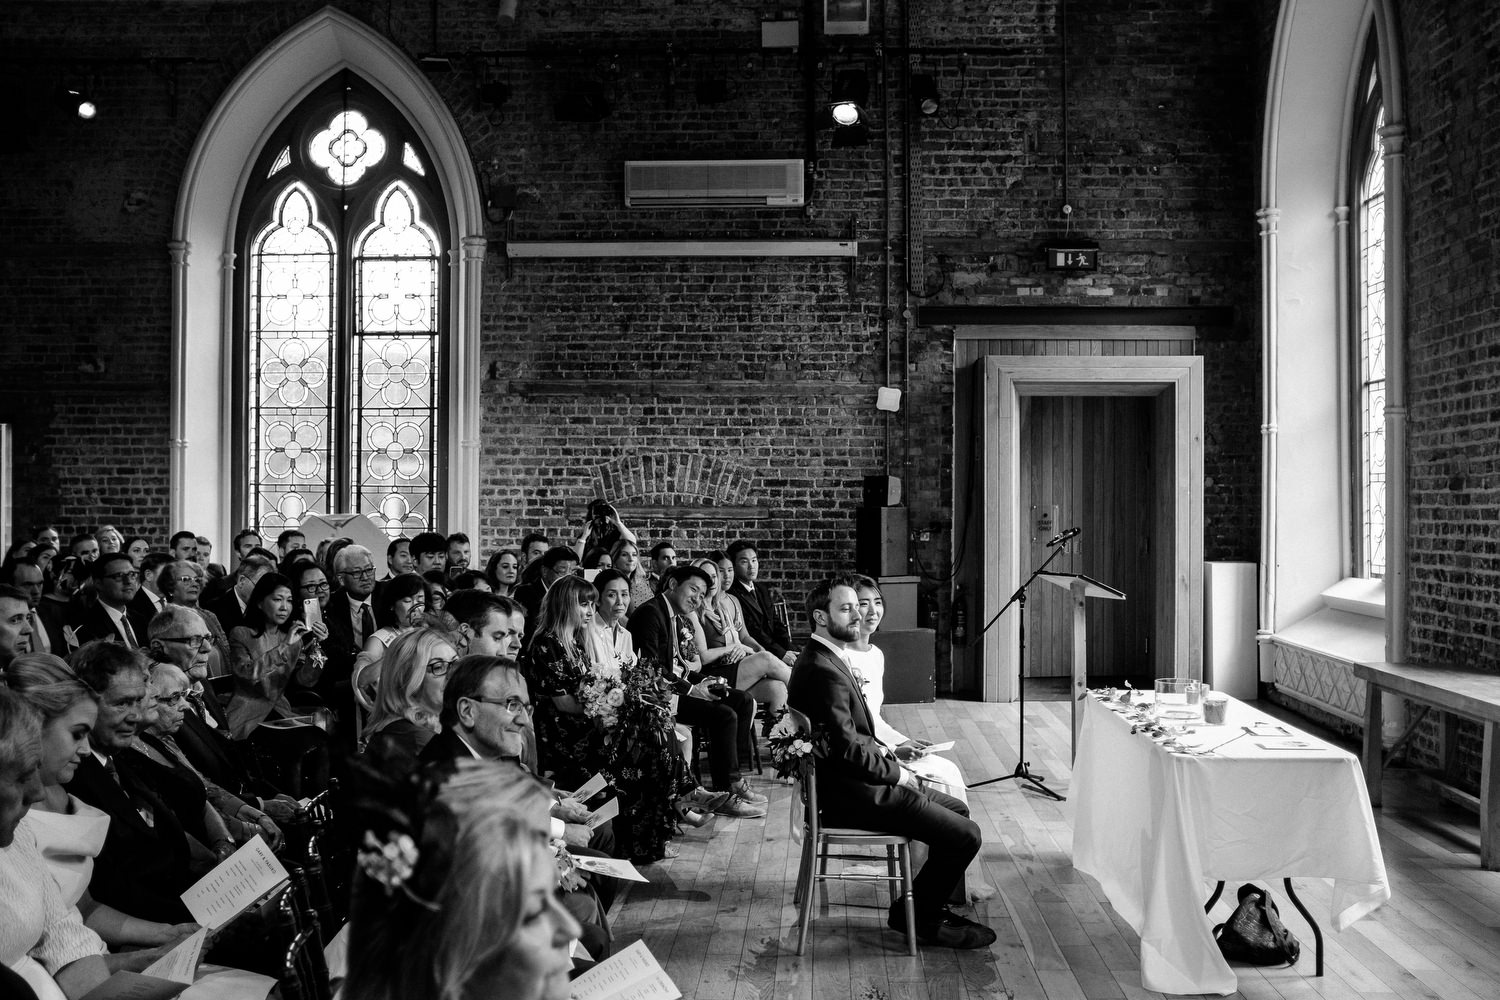 dmp0235_dublin_alley_photography_david_mcclelland_ceremony_humanist_documentary_theatre_smock_wedding_photographer